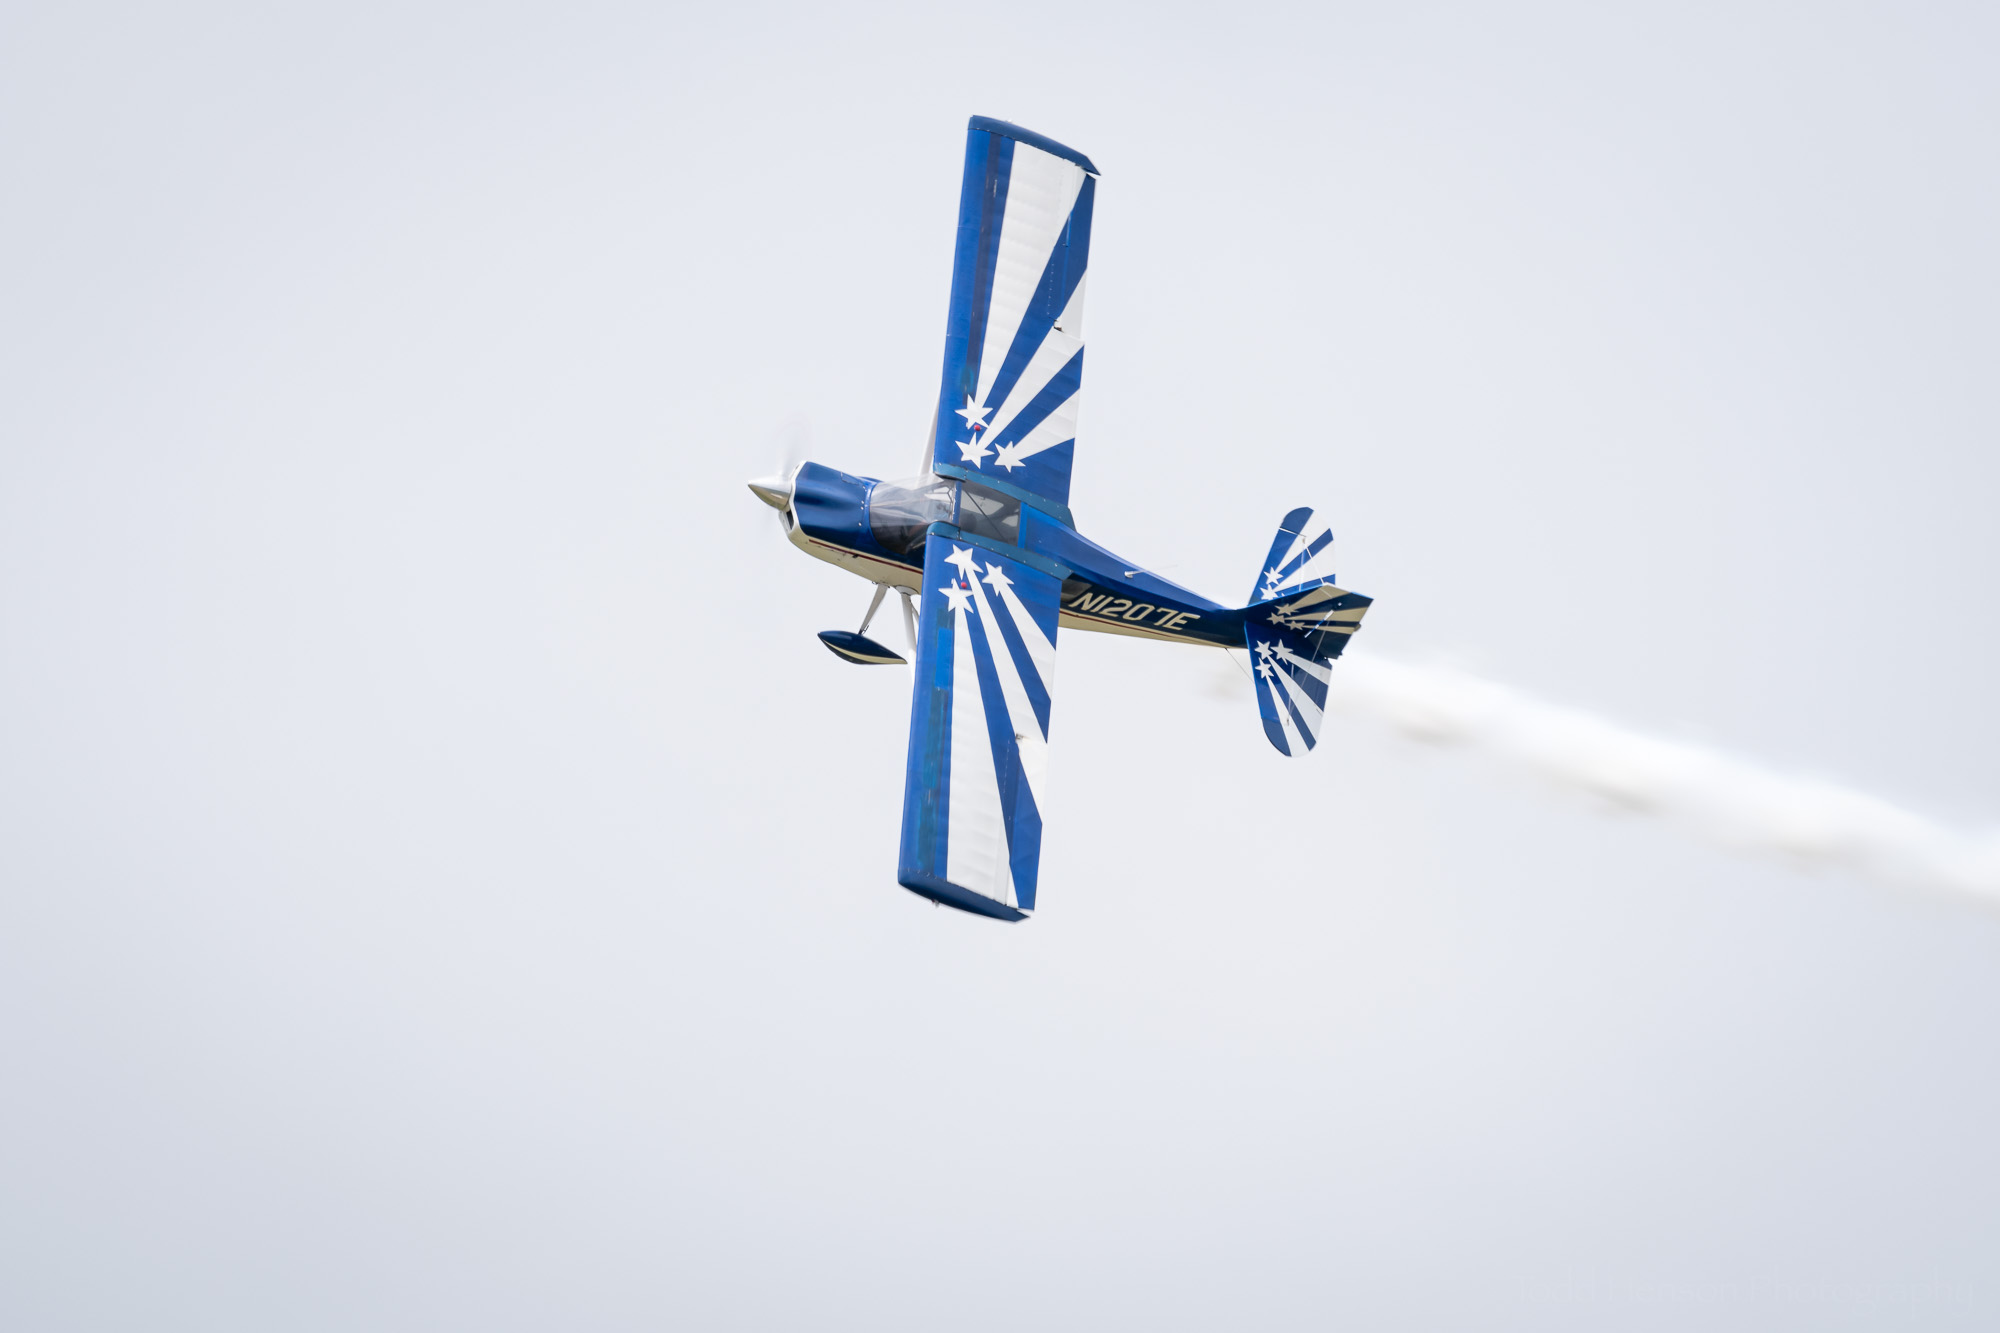 RJ Gritter flying by in his Bellanca Decathalon